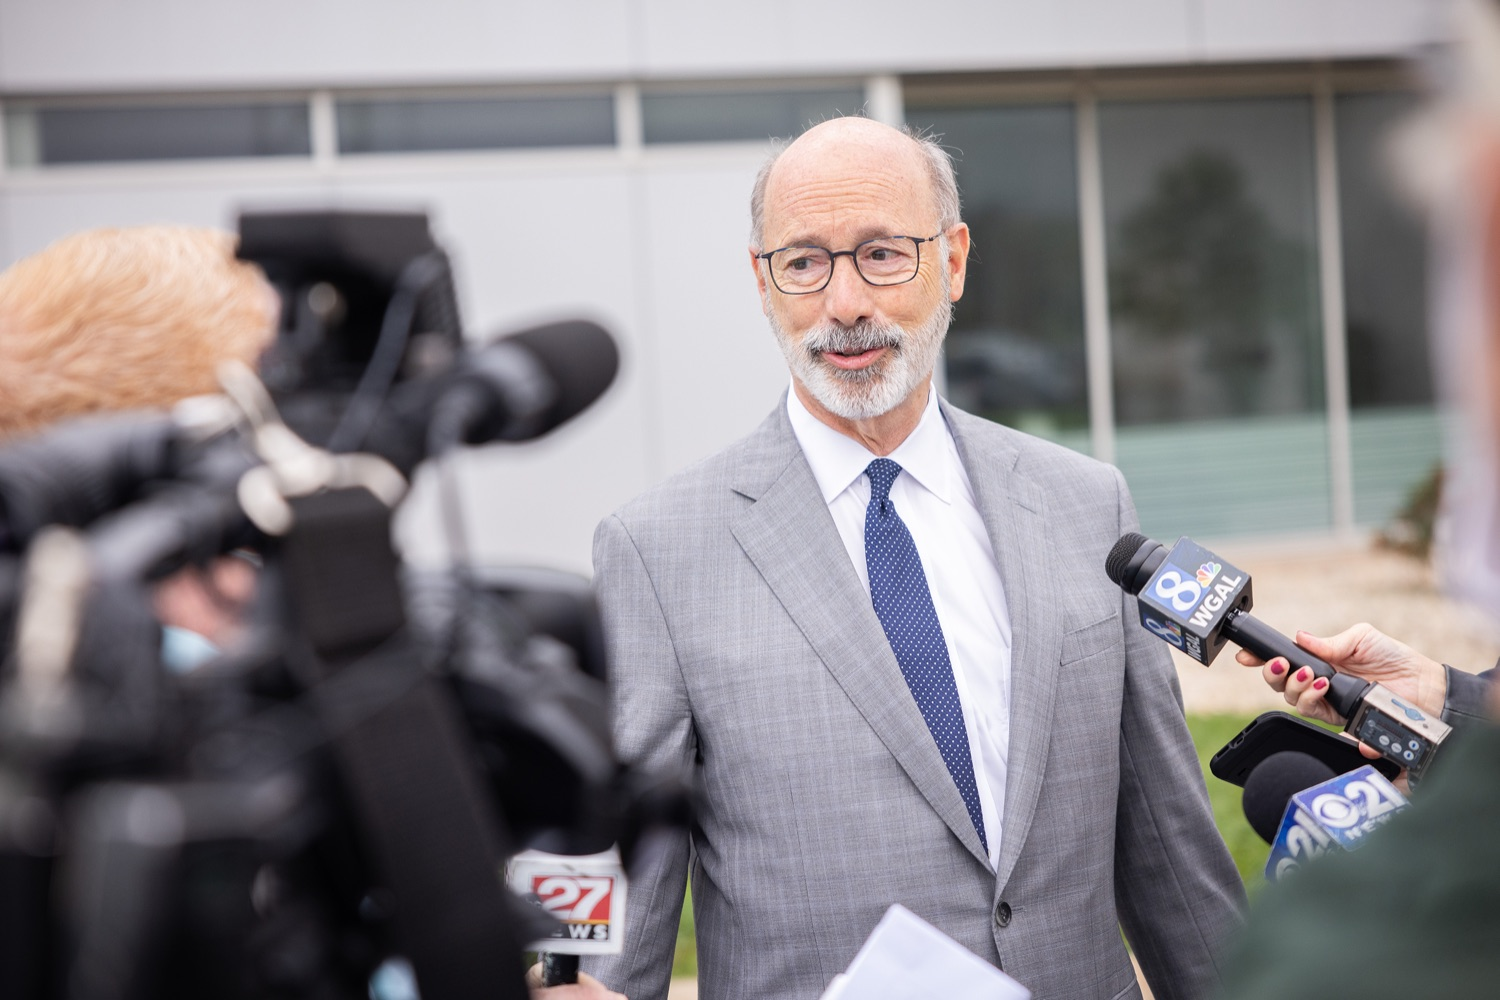 """<a href=""""https://filesource.wostreaming.net/commonwealthofpa/photo/20138_gov_BioTechniqueRibbon_dz_019.JPG"""" target=""""_blank"""">⇣Download Photo<br></a>Pennsylvania Governor Tom Wolf speaking with the press.  Governor Tom Wolf today joined BioTechnique CEO John Clapham, the Department of Community and Economic Developments (DCED) Governors Action Team (GAT), York County Economic Alliance CEO Kevin Schreiber, and local officials at the ribbon cutting ceremony for BioTechniques new pharmaceutical manufacturing facility in York County.   OCTOBER 12, 2021 - YORK, PA"""